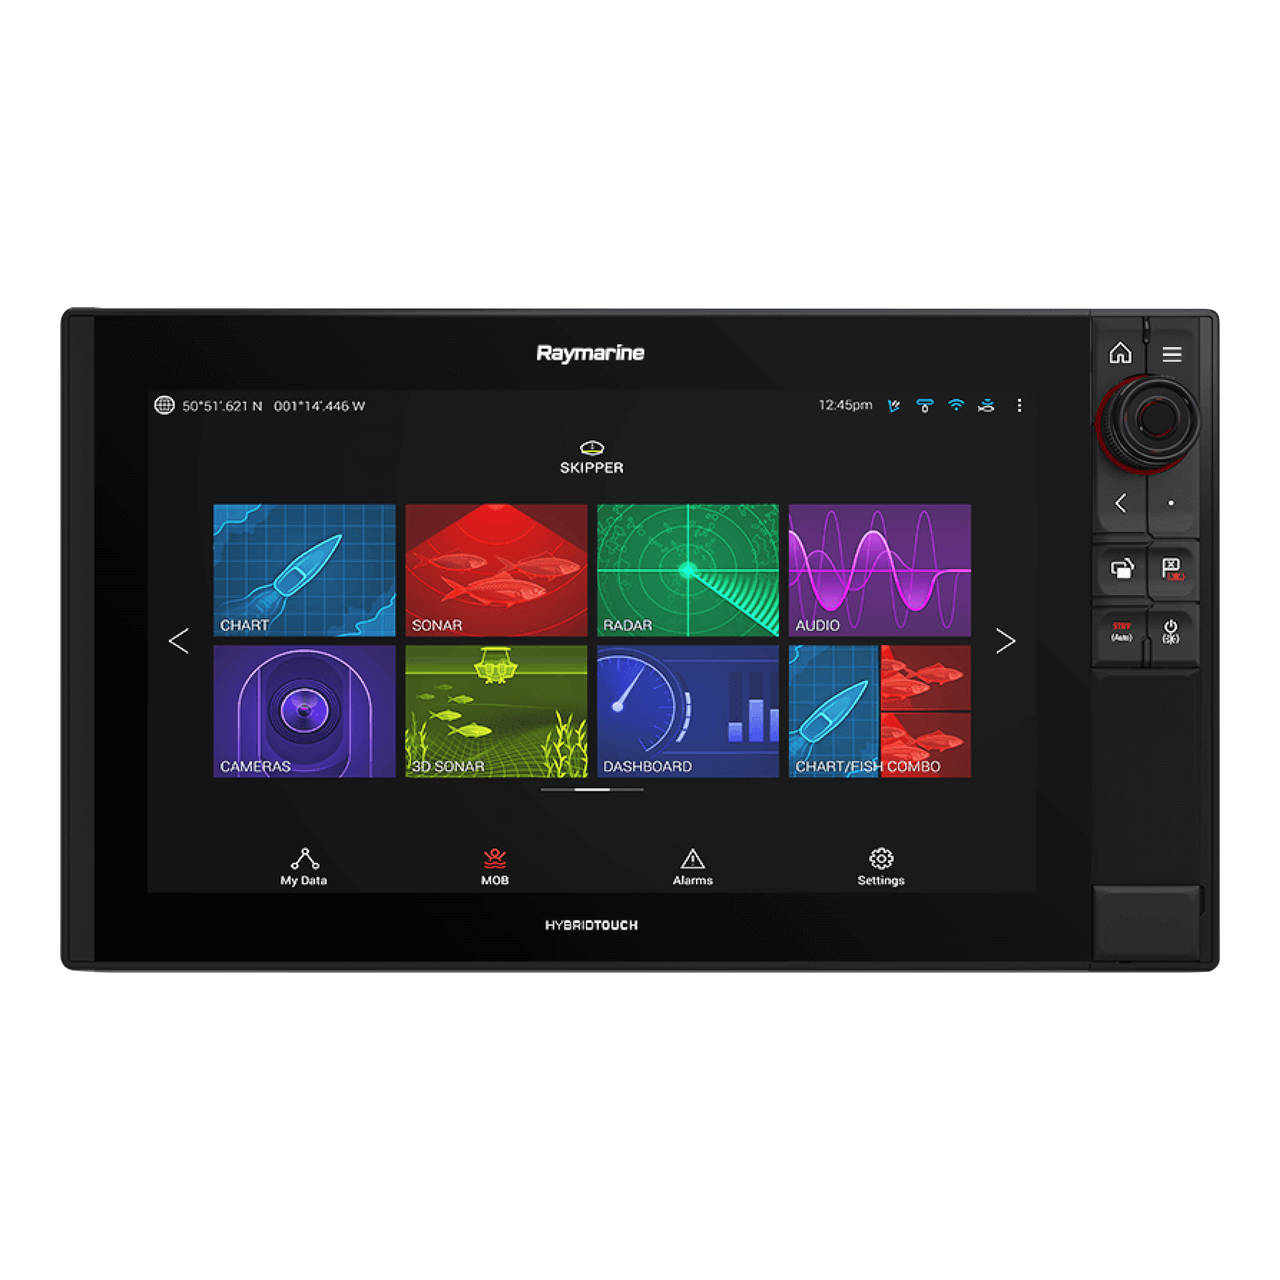 Raymarine Axiom Pro 16 S Multifunction Display